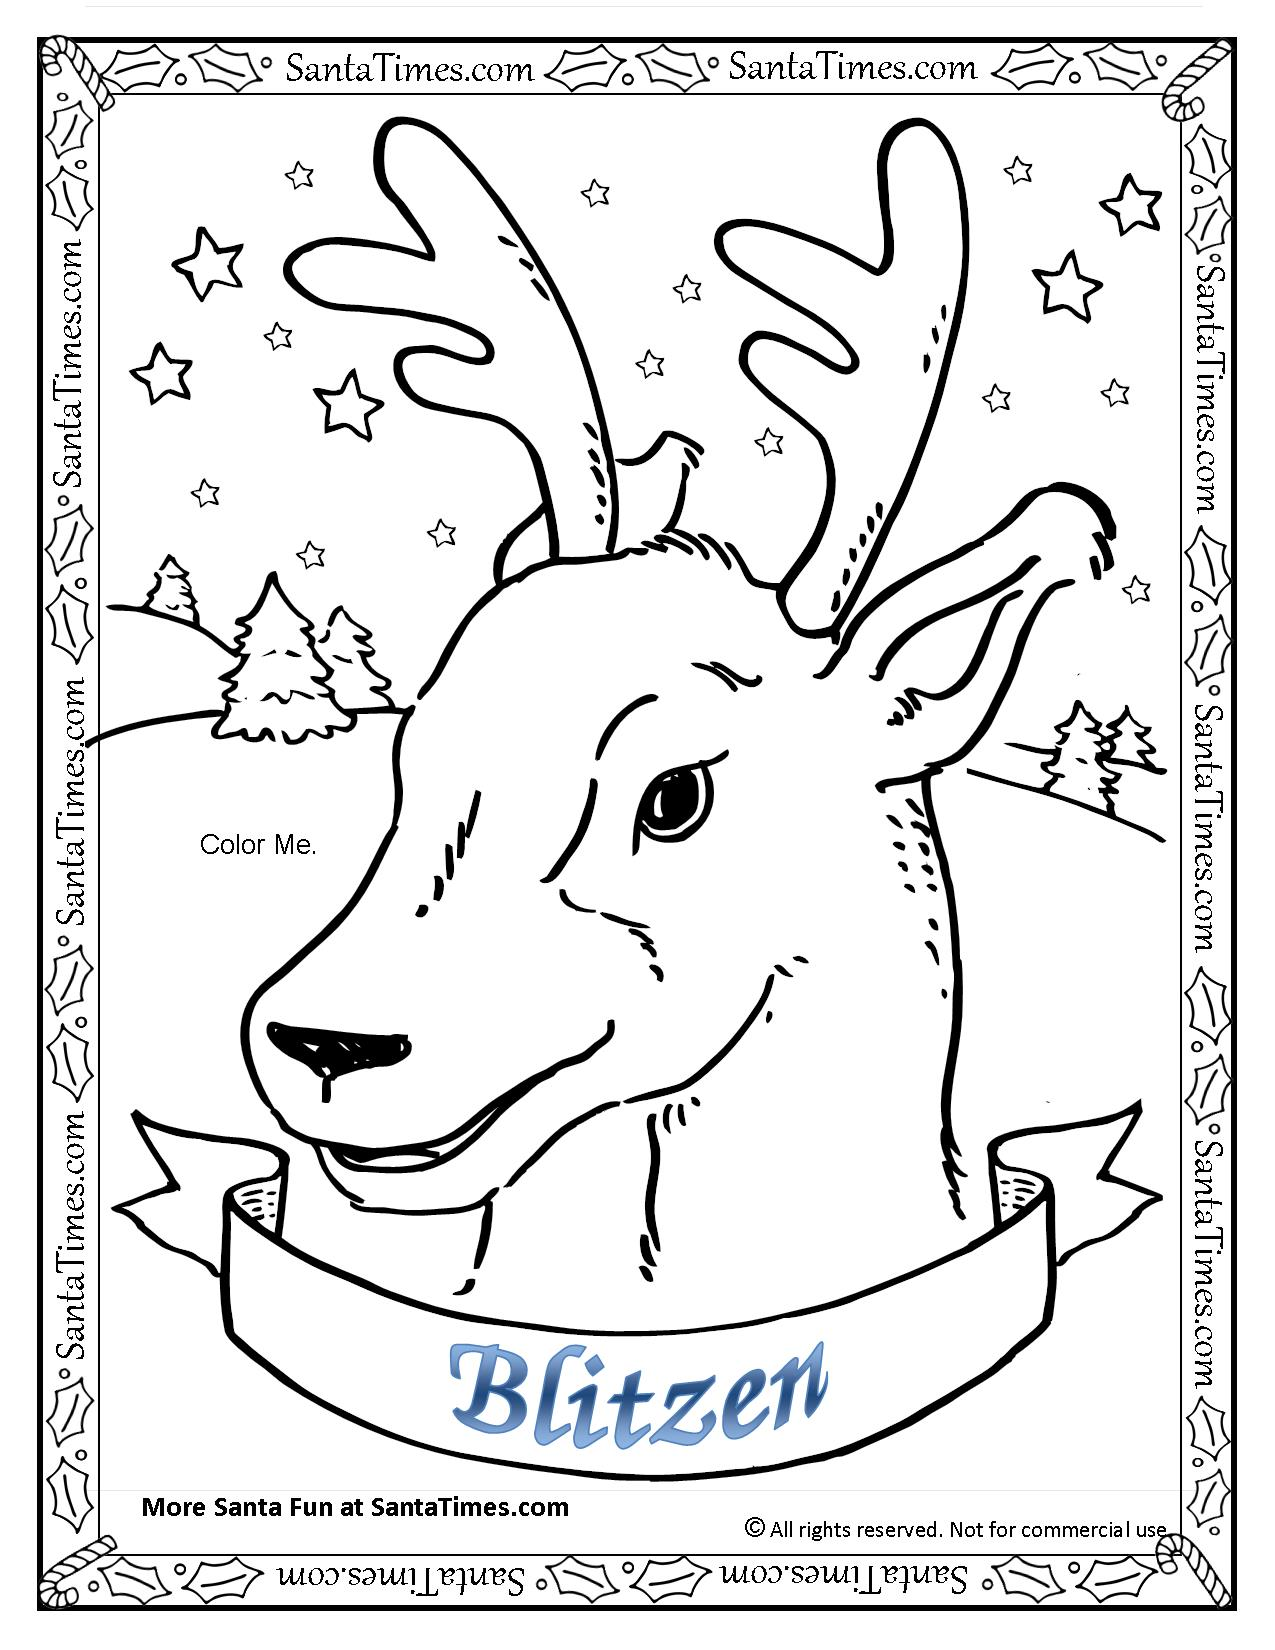 Blitzen the Reindeer